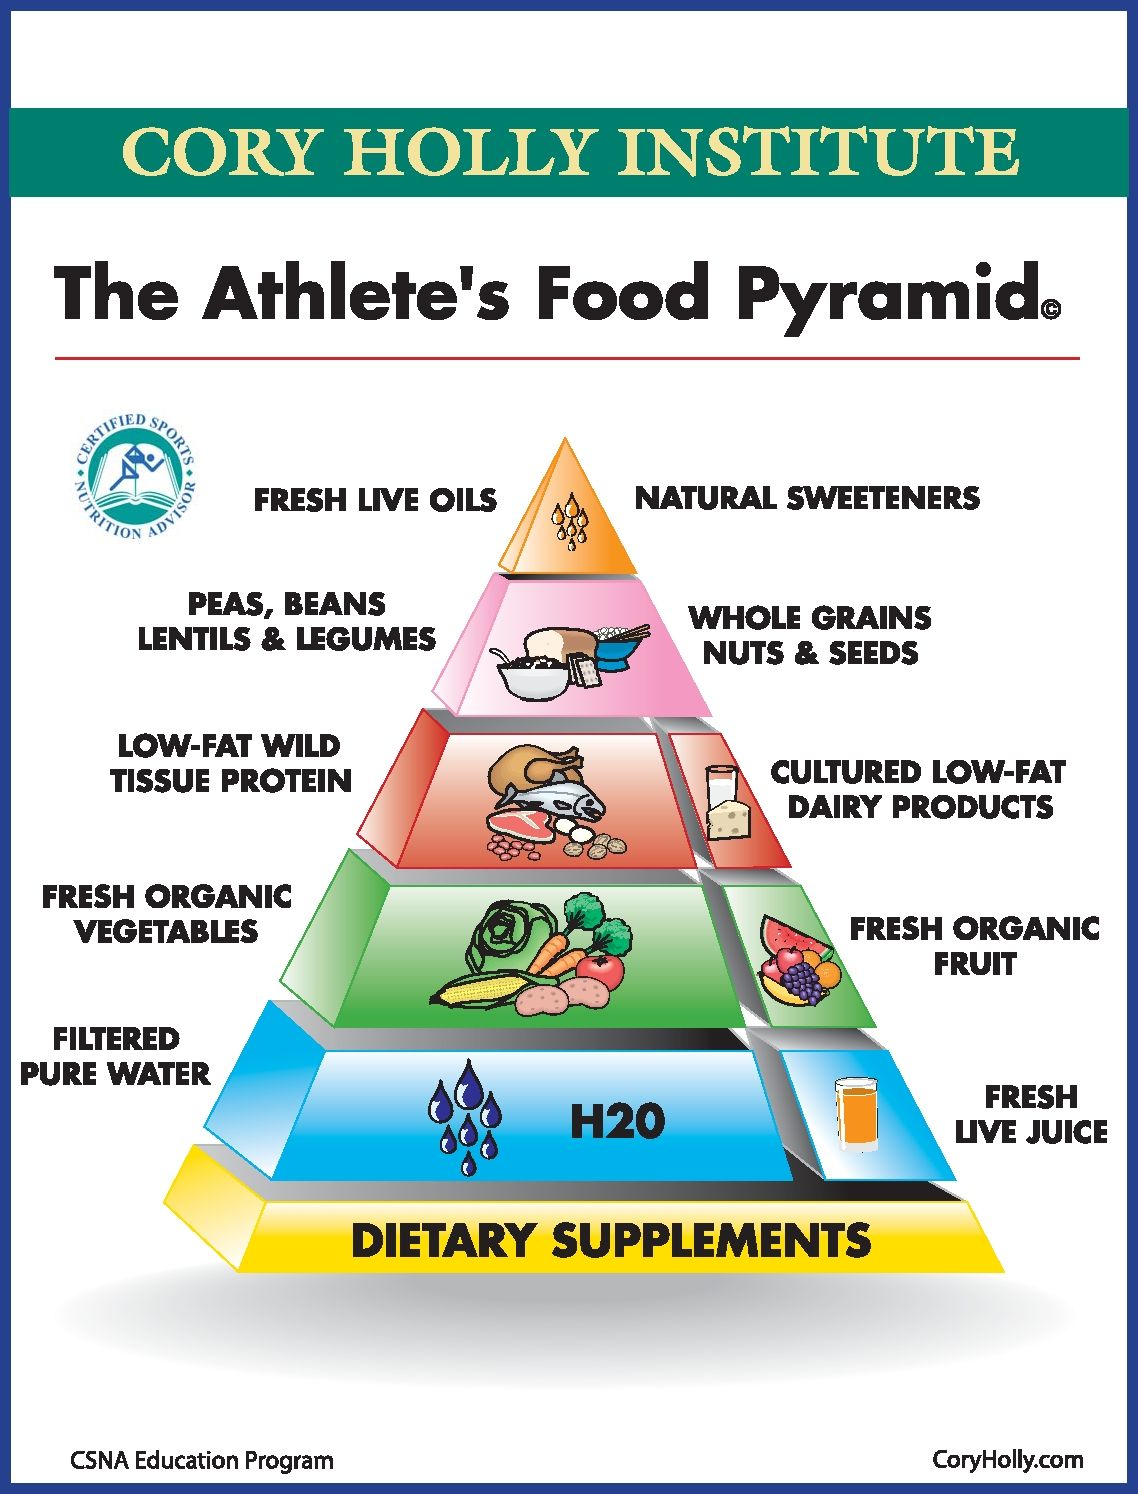 5 Nutrition Tips for Athletes